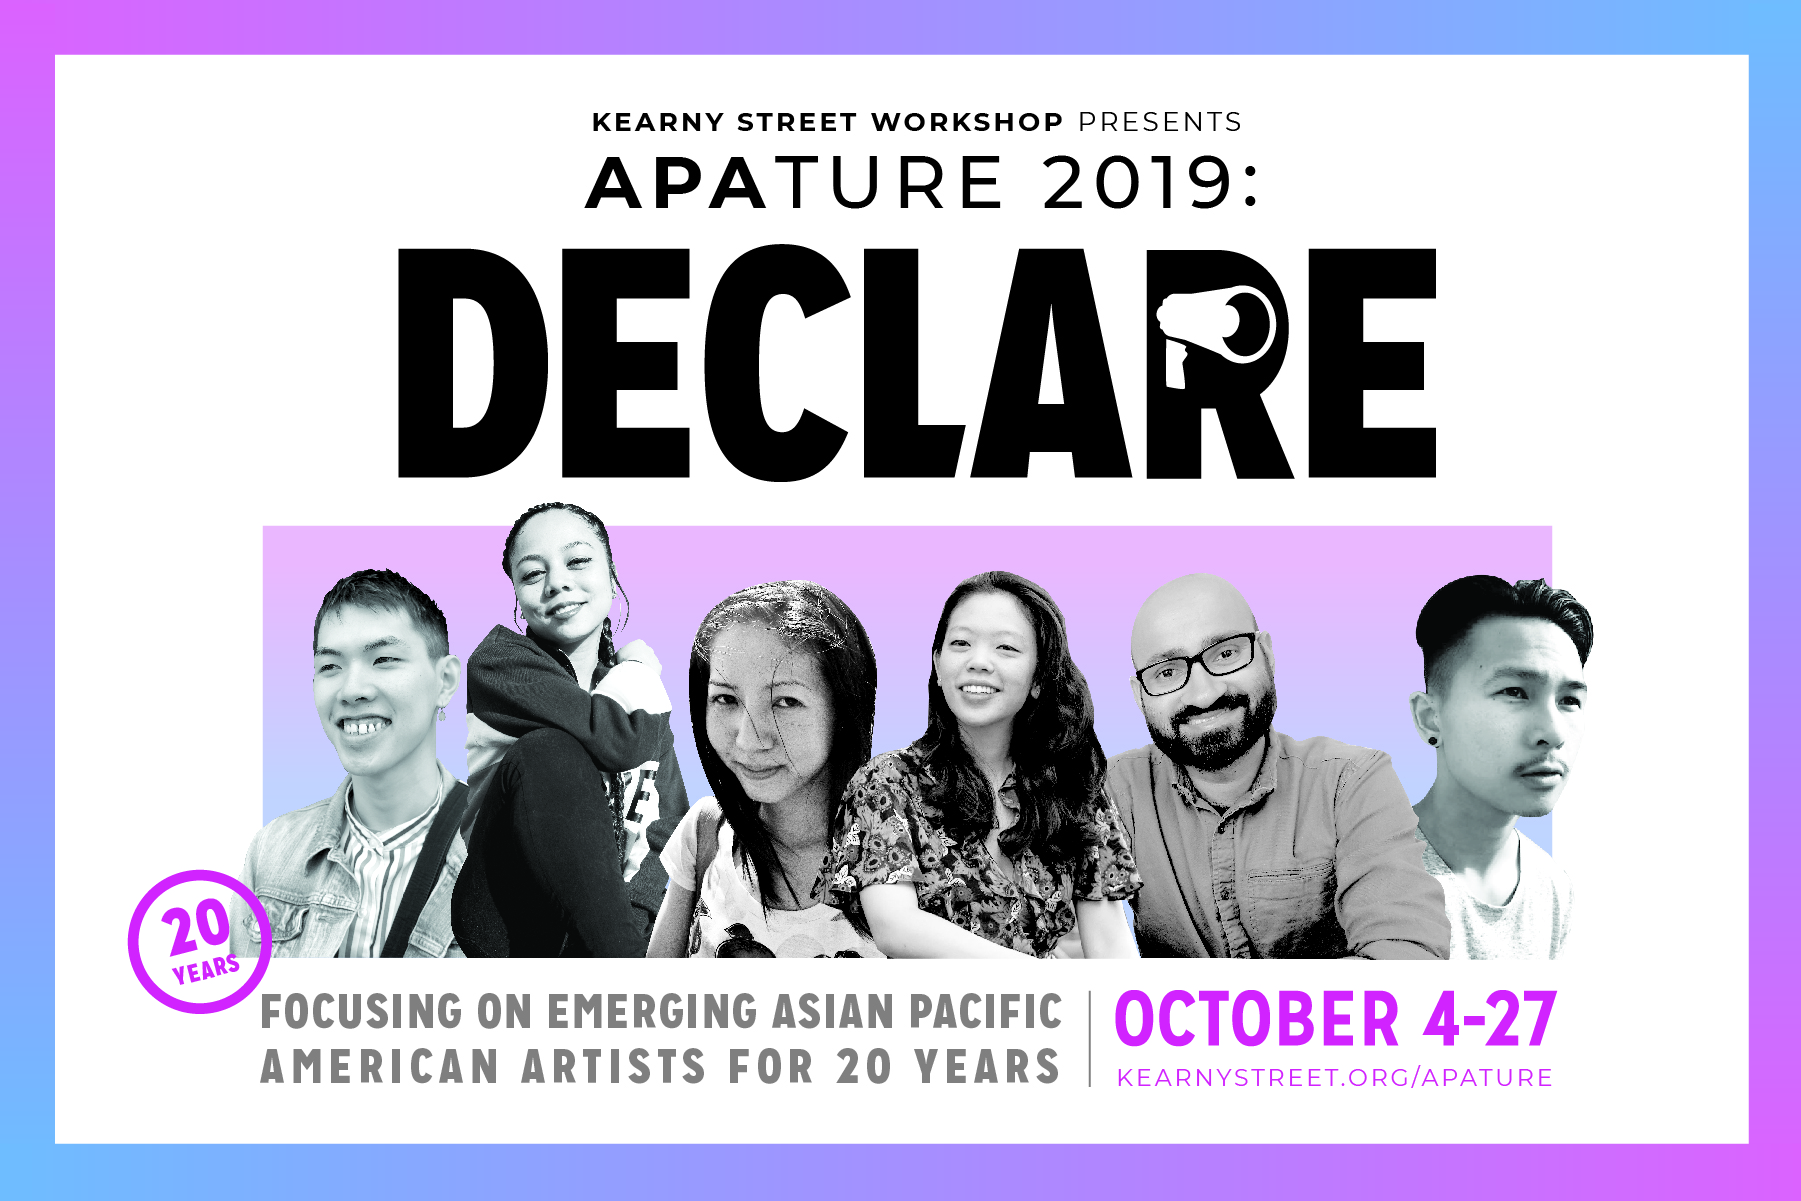 Apature2019_4x6_postcard_v4_front.jpg